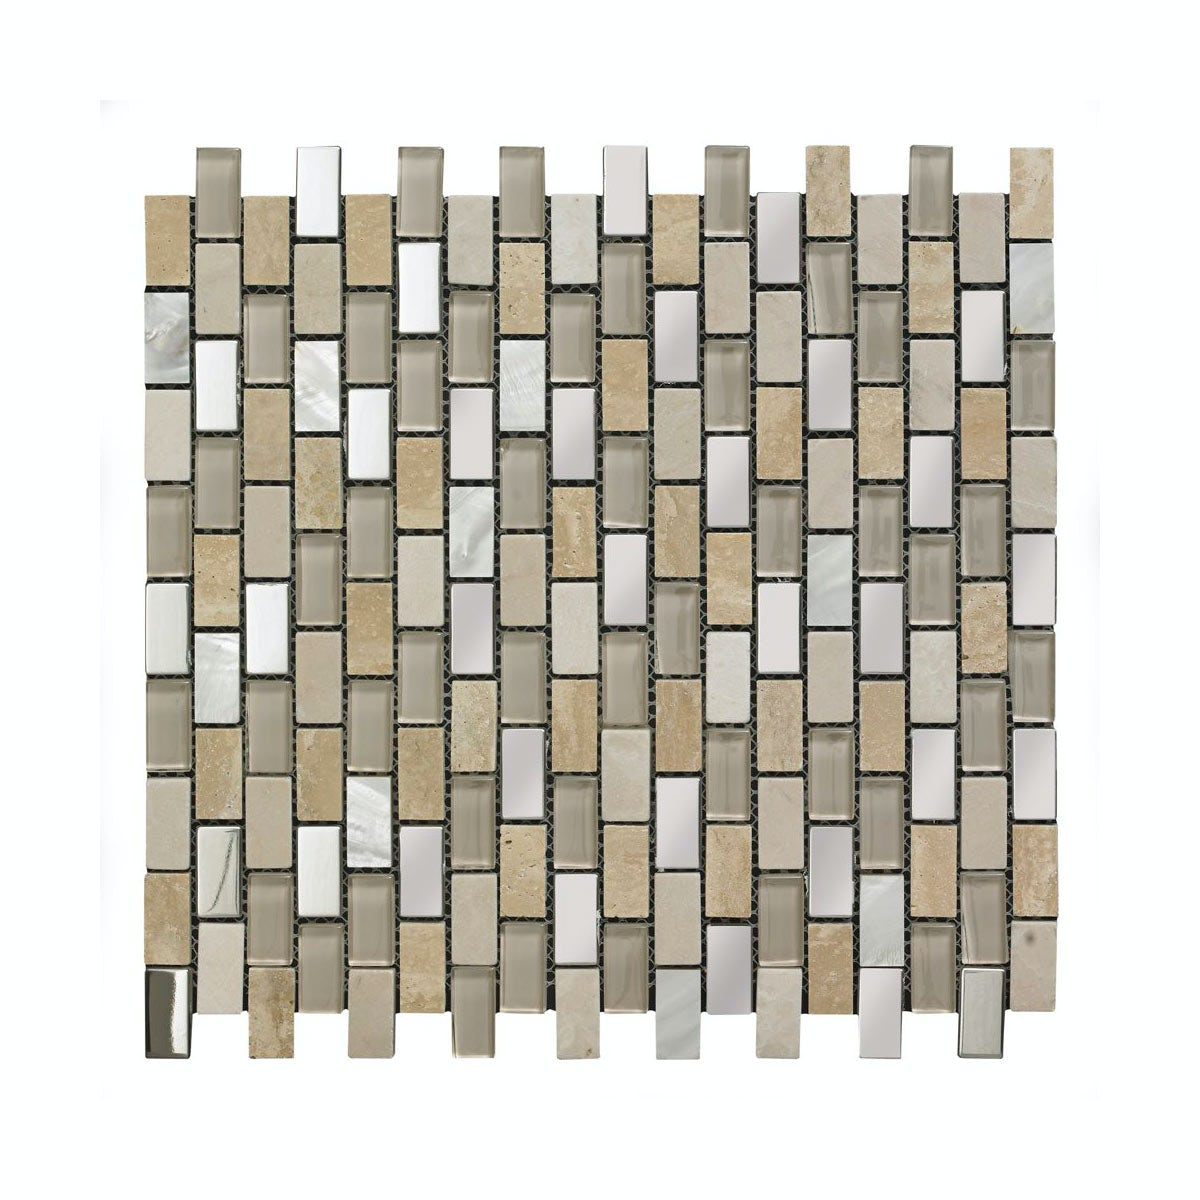 British Ceramic Tile Mosaic biscuit beige gloss tile 300mm x 300mm - 1 sheet